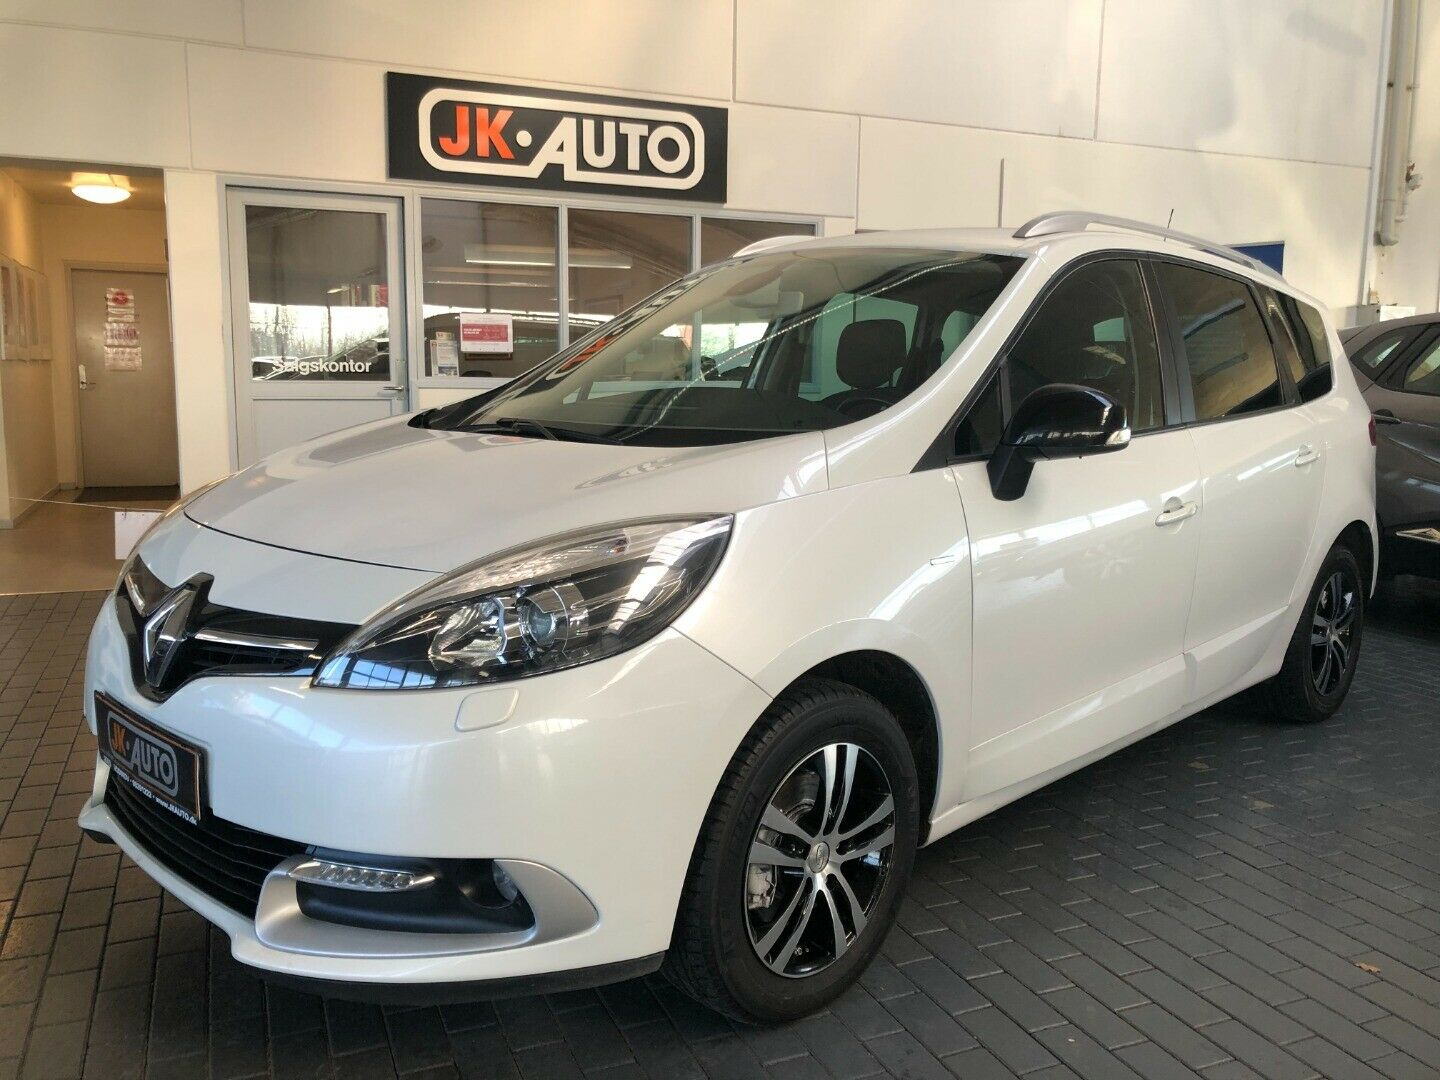 Renault Grand Scenic III 1,5 dCi 110 Limited Edition 7prs 5d - 109.800 kr.